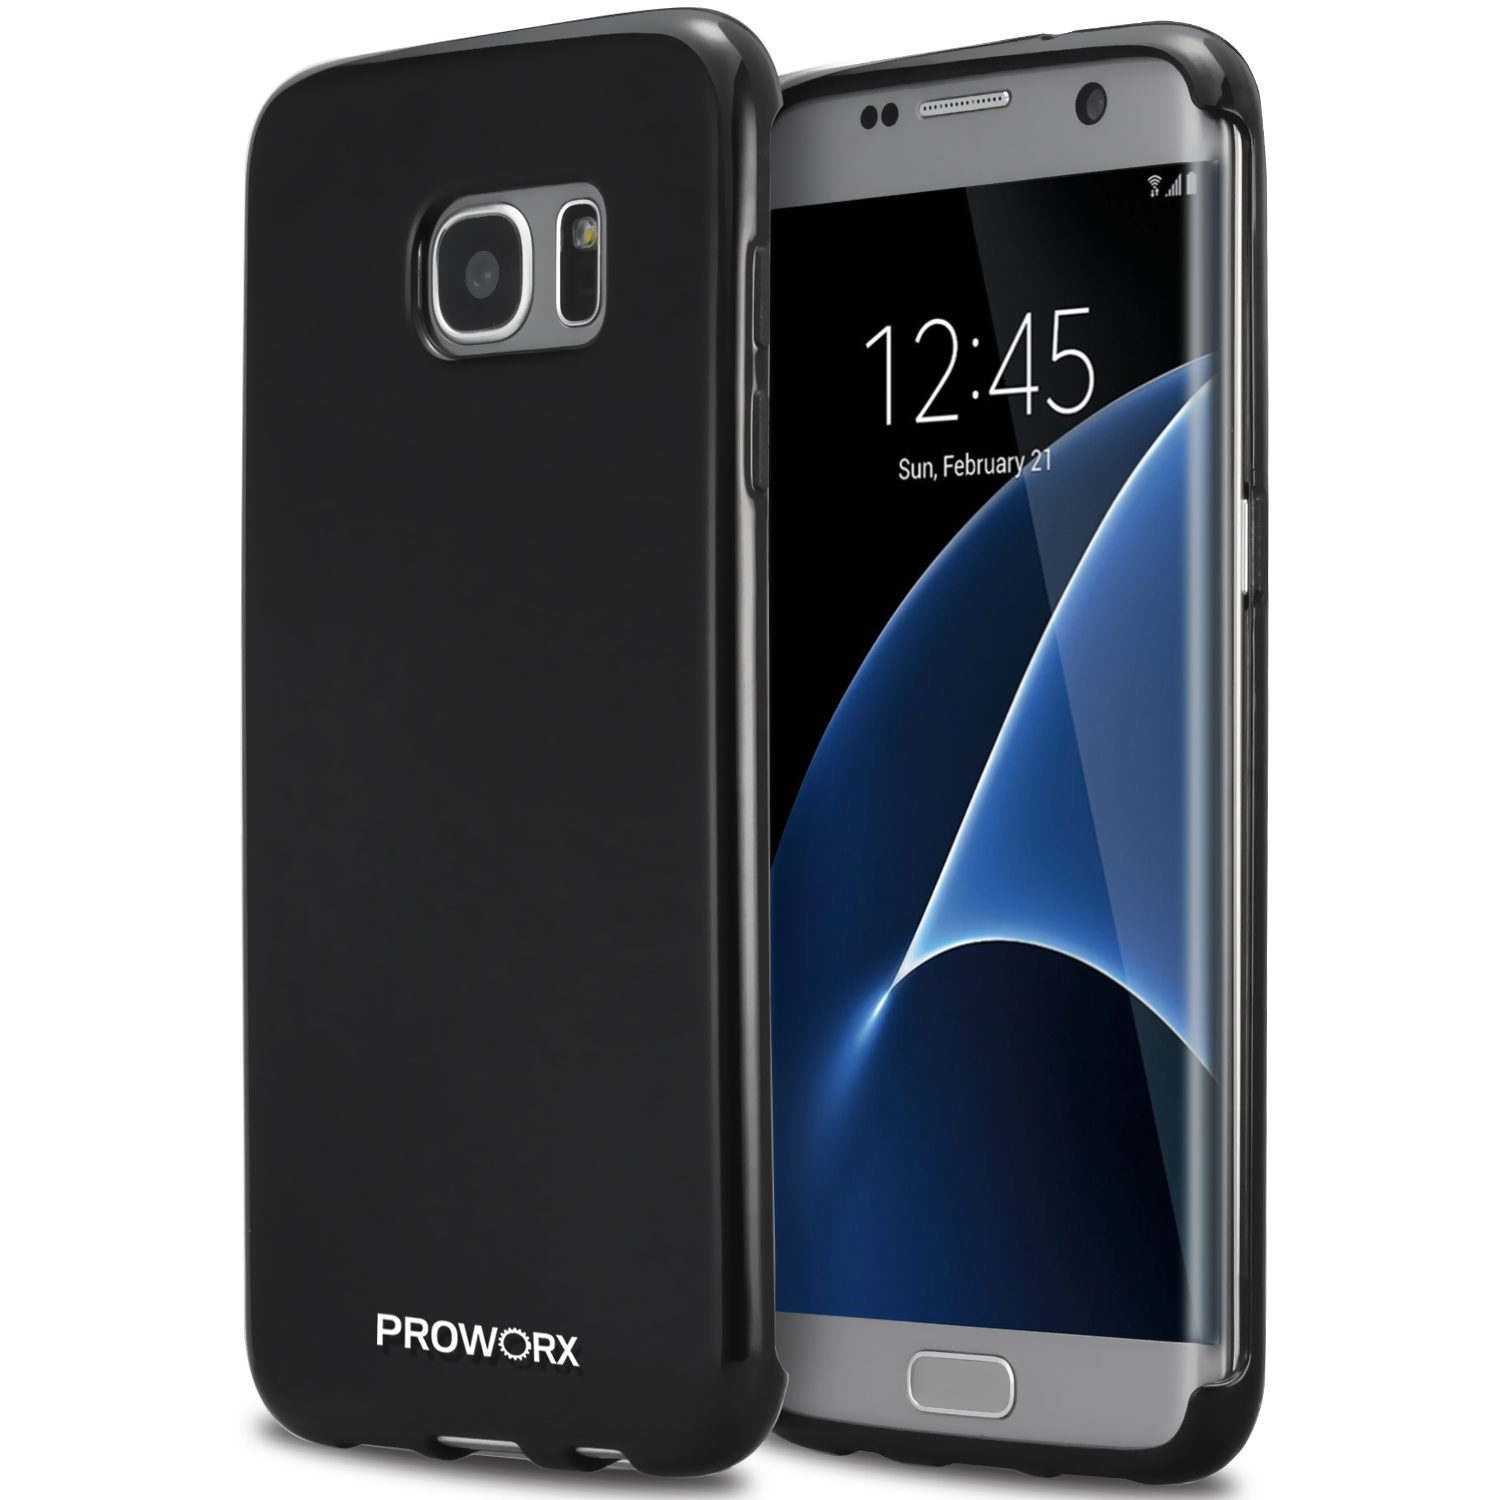 Samsung Galaxy S7 Edge Black ProWorx Ultra Slim Thin Scratch Resistant TPU Silicone Case Cover